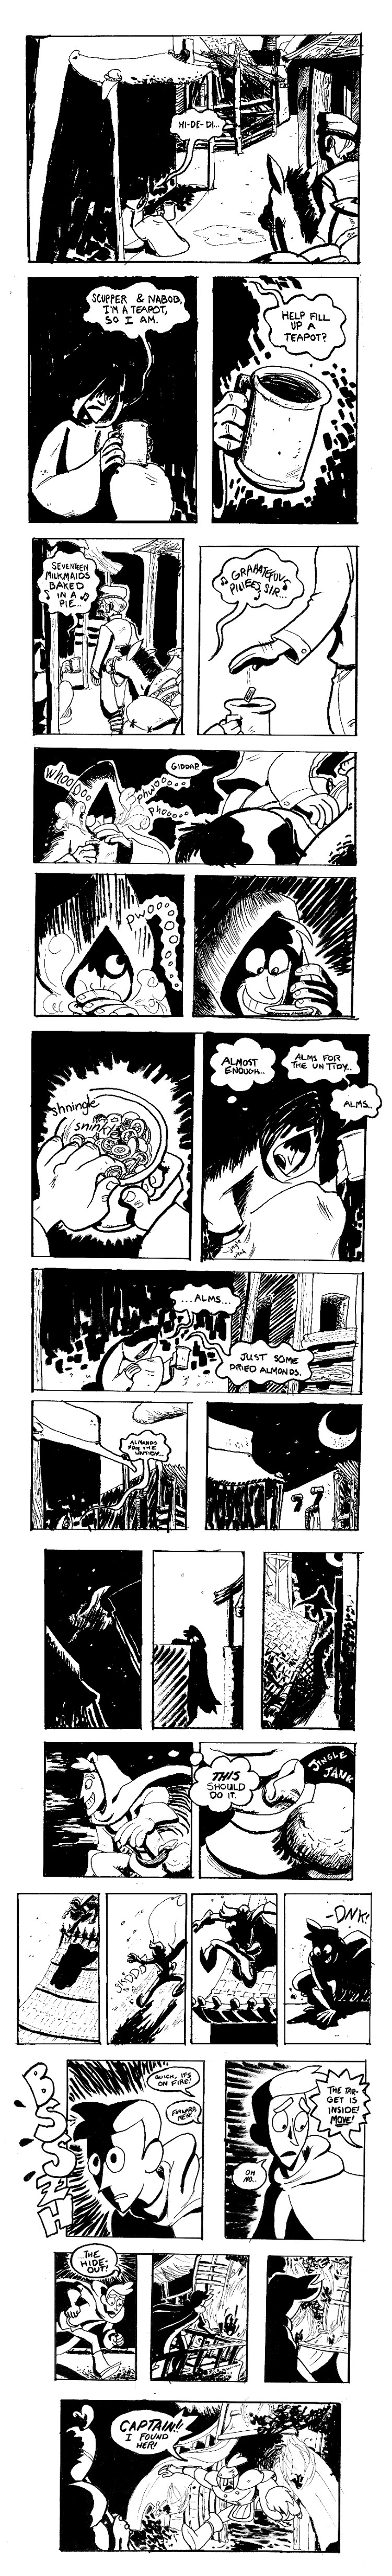 panorama_pages1-5